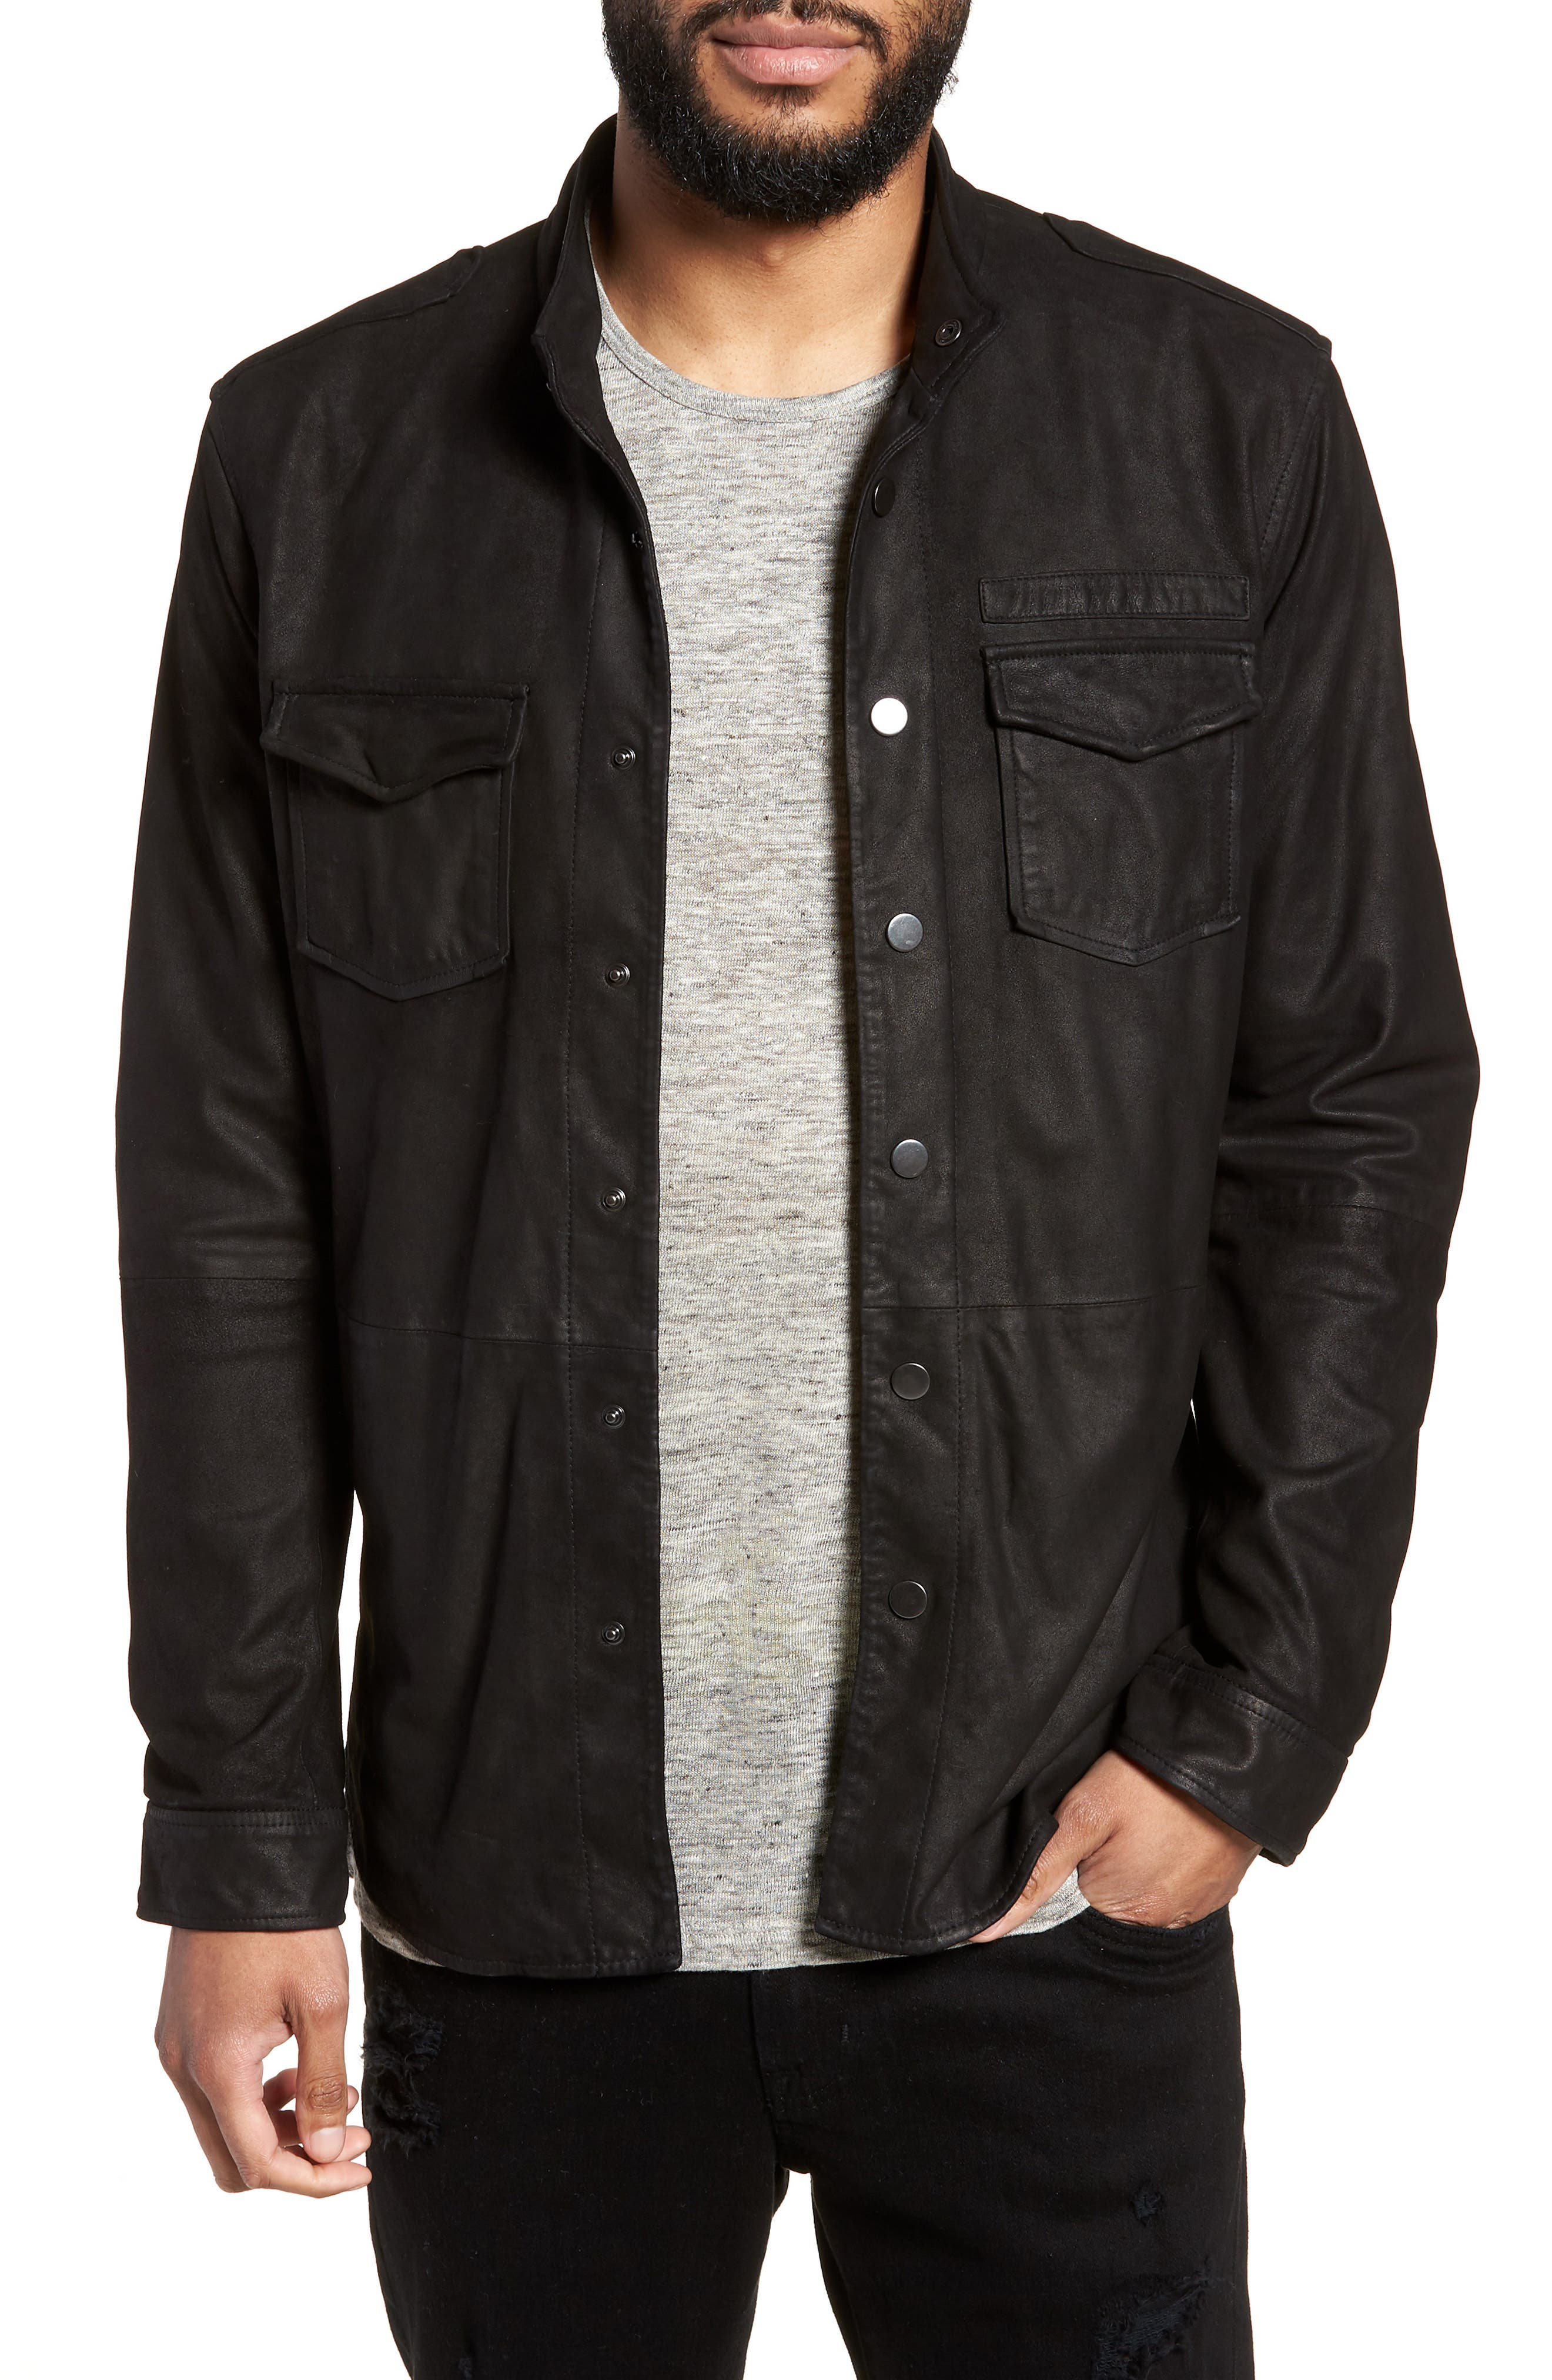 Alternate Image 1 Selected - John Varvatos x Nick Jonas Suede Shirt Jacket